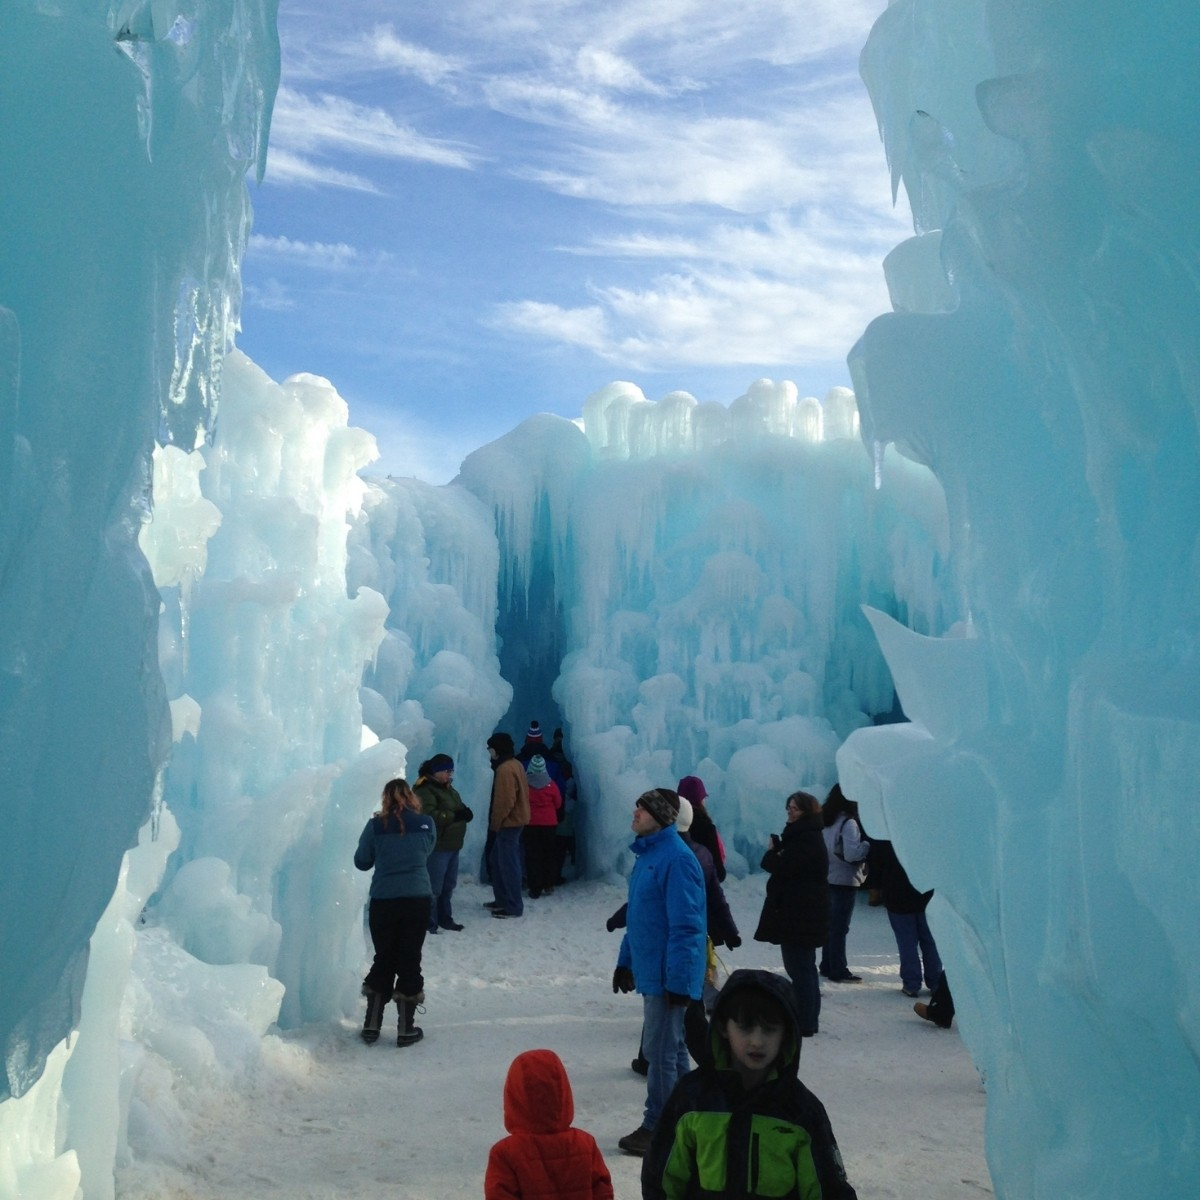 Tall walls of ice at the Ice Castles in New Hampshire with people walking around.